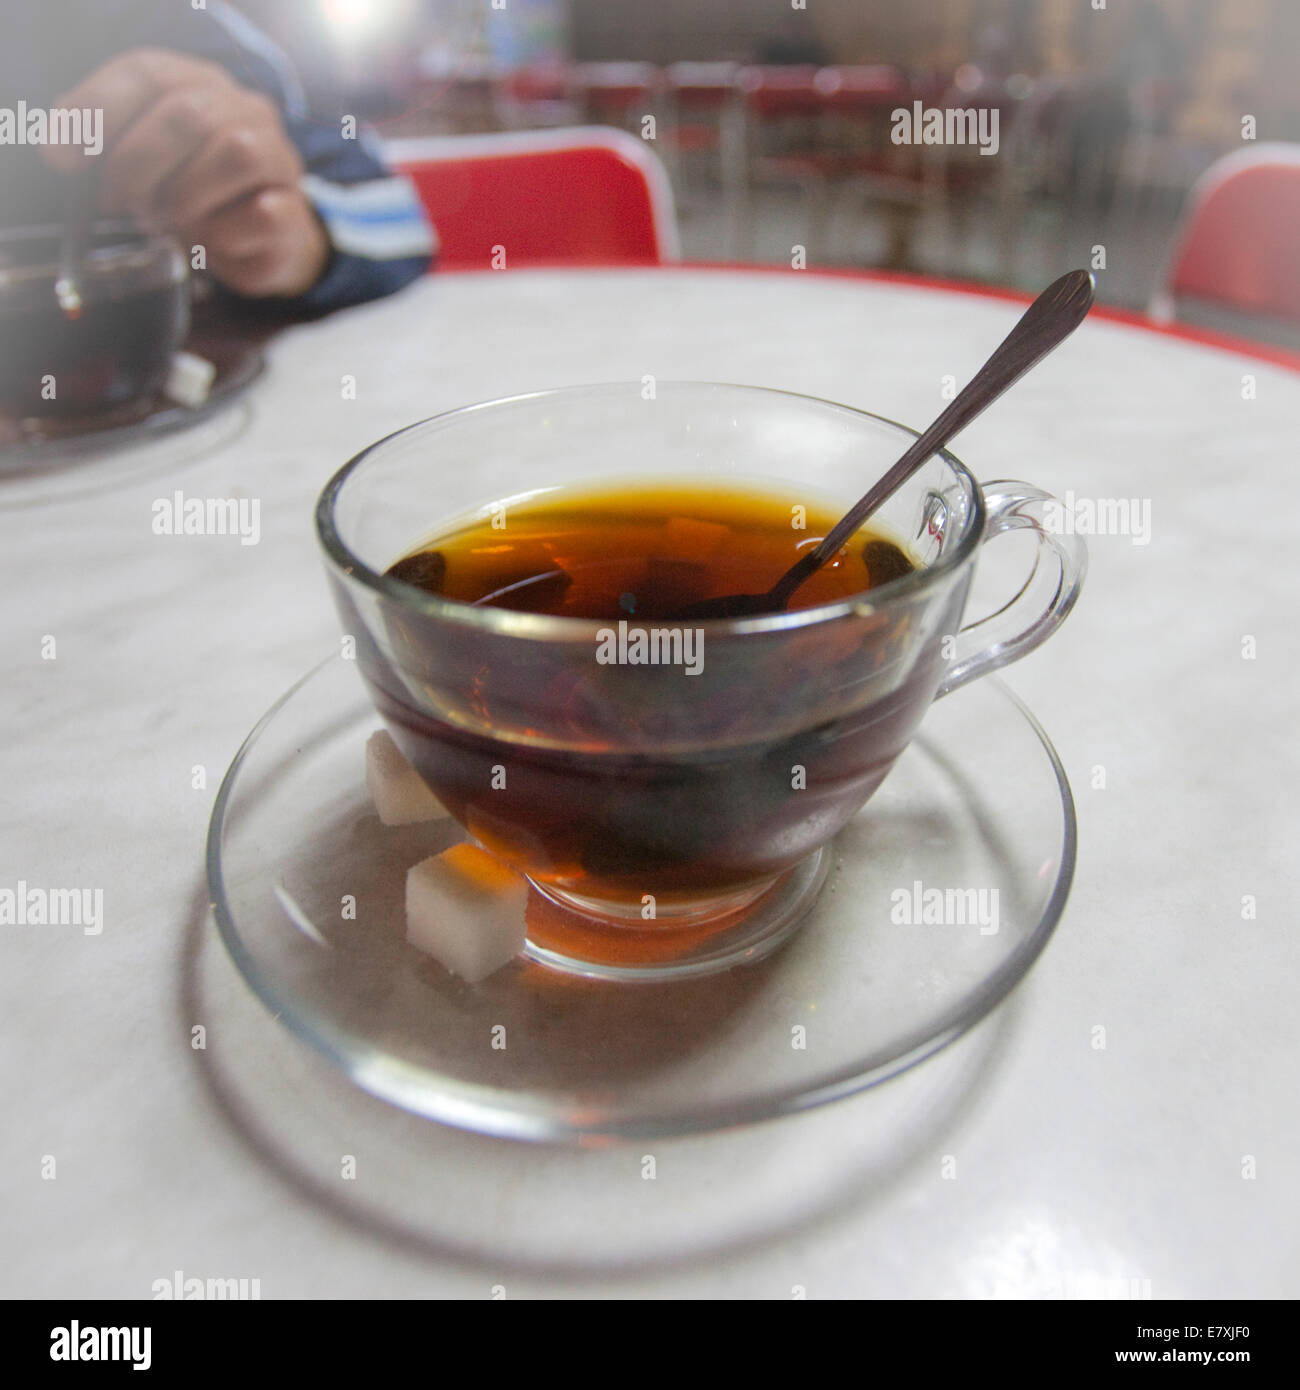 Turkish tea in transparent cup with saucer and spoon and two sugar cubes - Stock Image